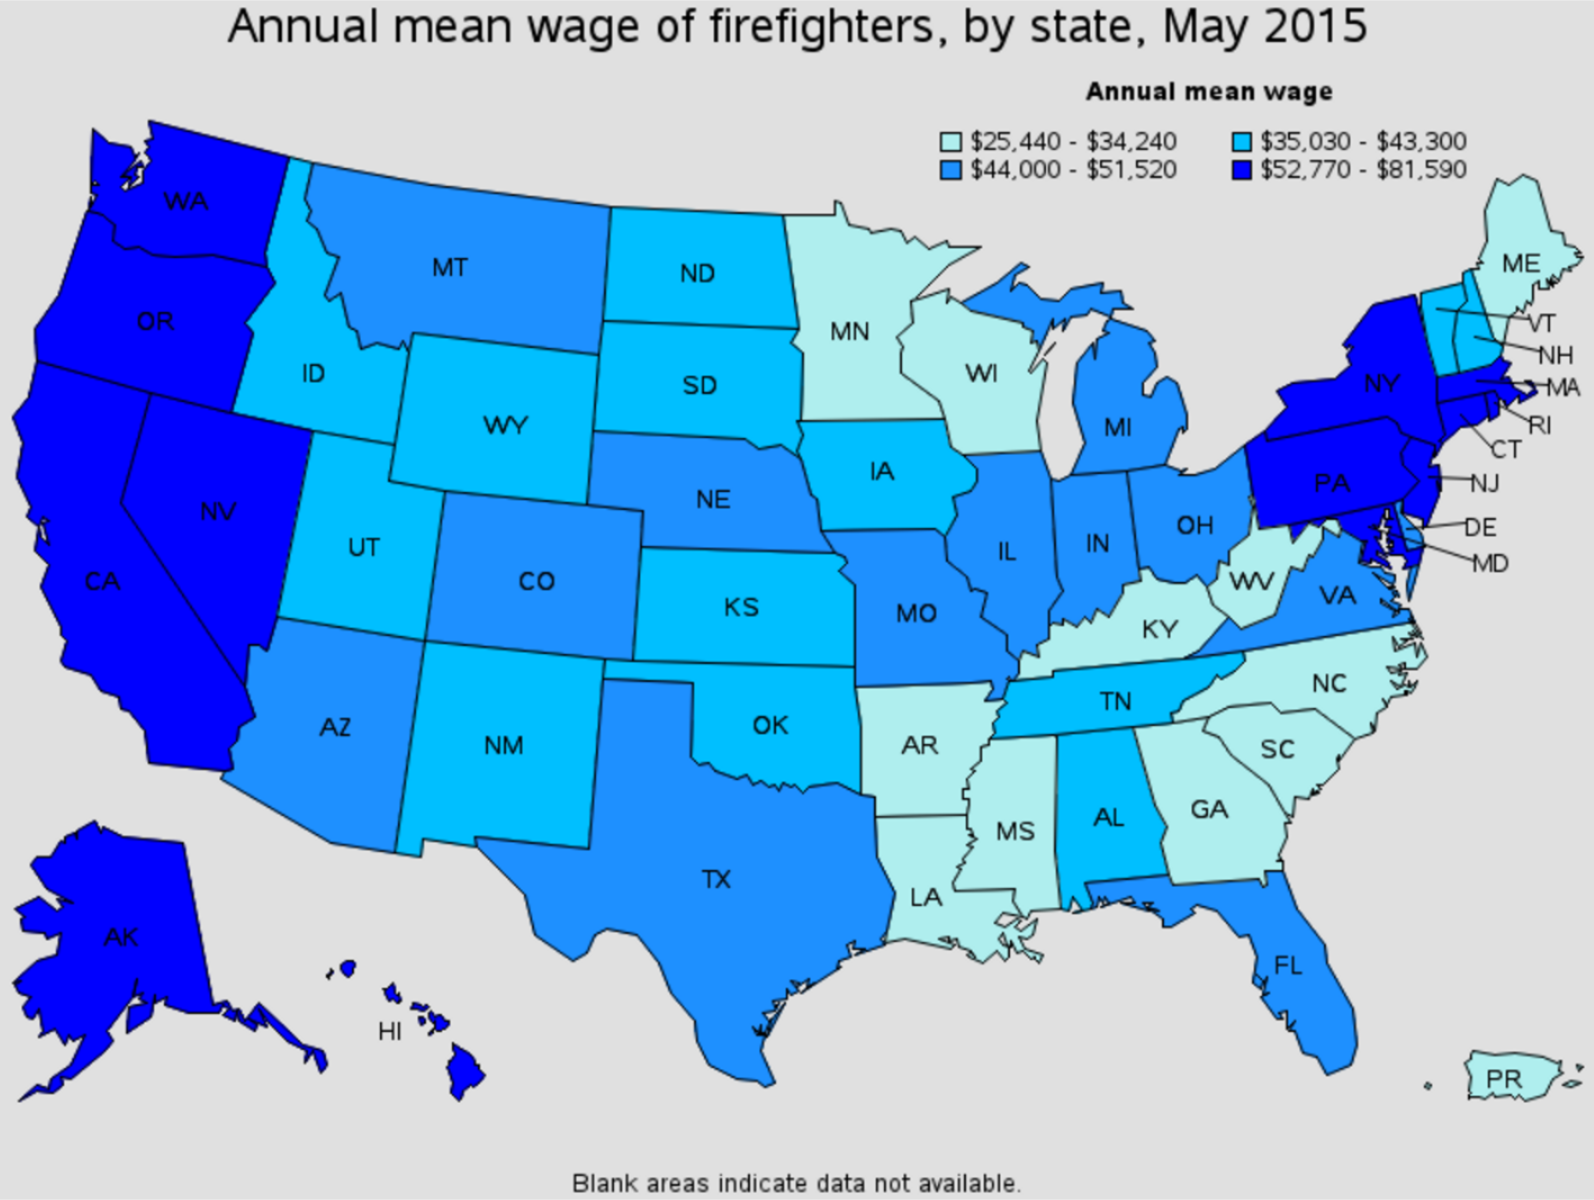 firefighter average salary by state Norman Oklahoma